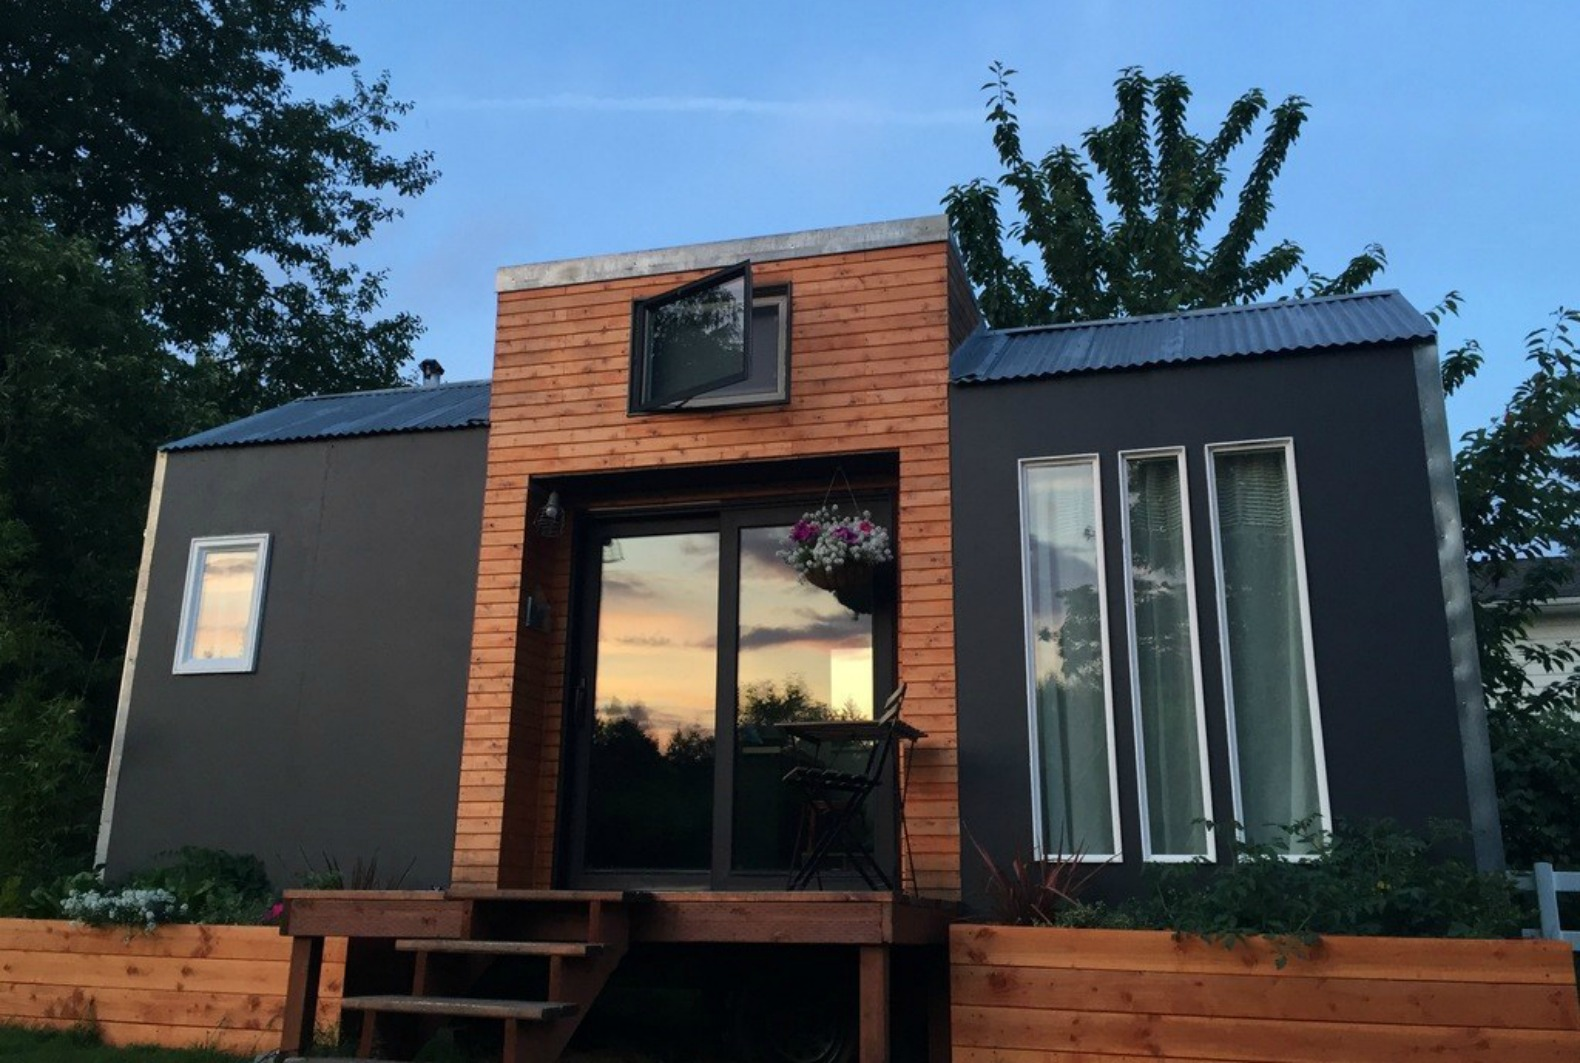 Small Space House Design This Amazing Light Filled Tiny House Packs Big Style For